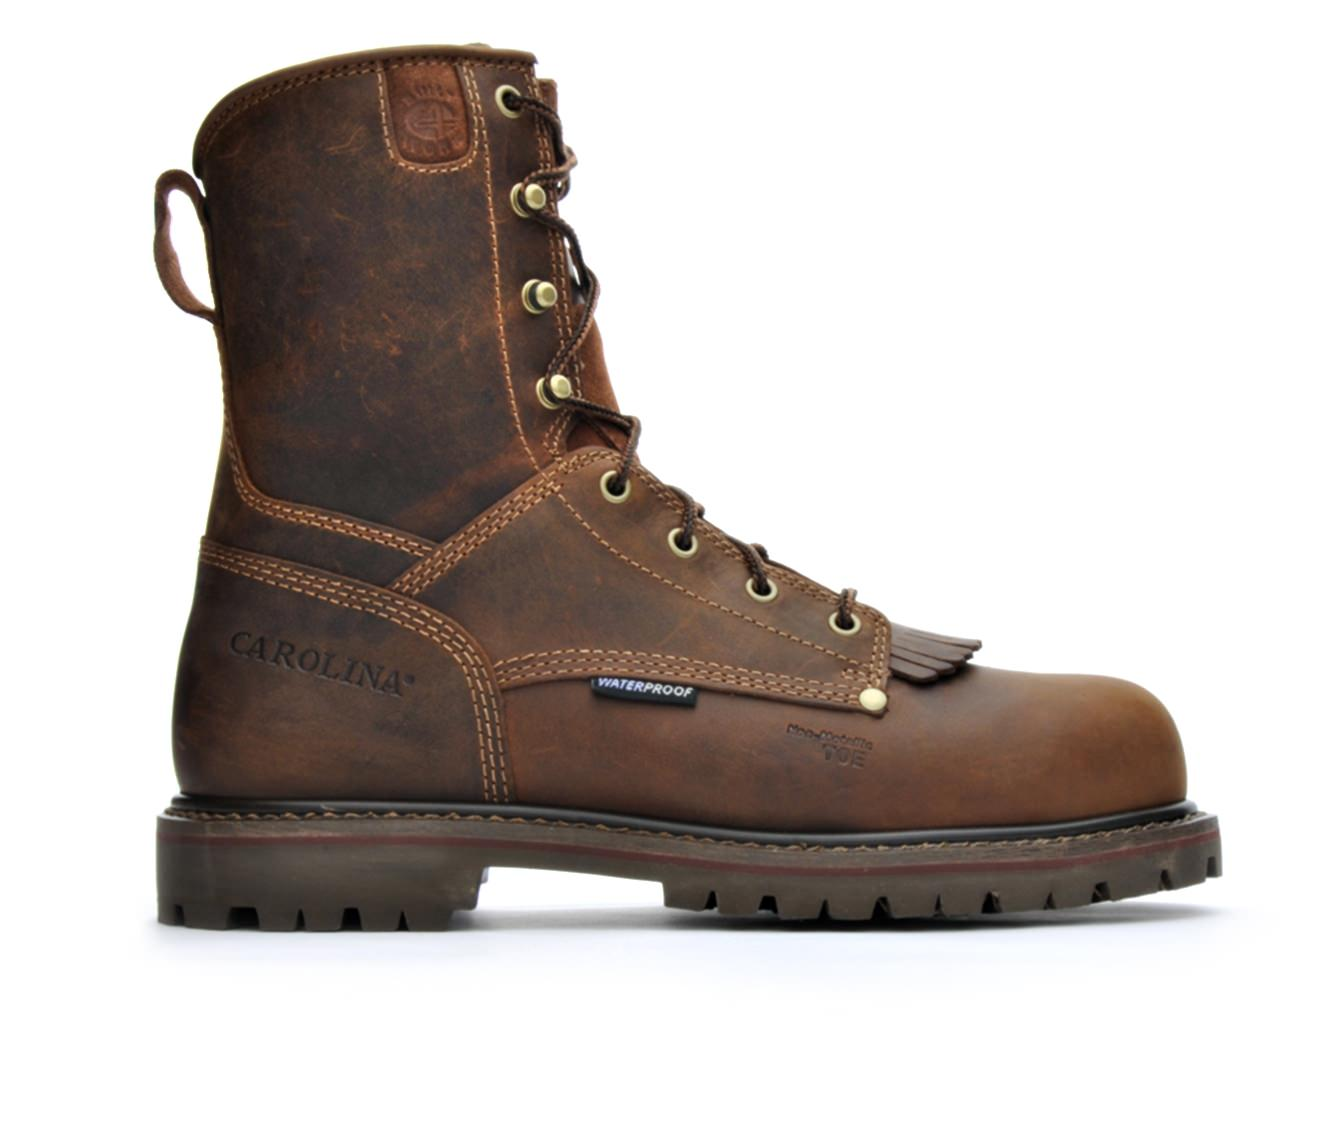 Carolina Boots CA8528 8 In Composite Toe Waterproof Men's Boots (Brown Leather)